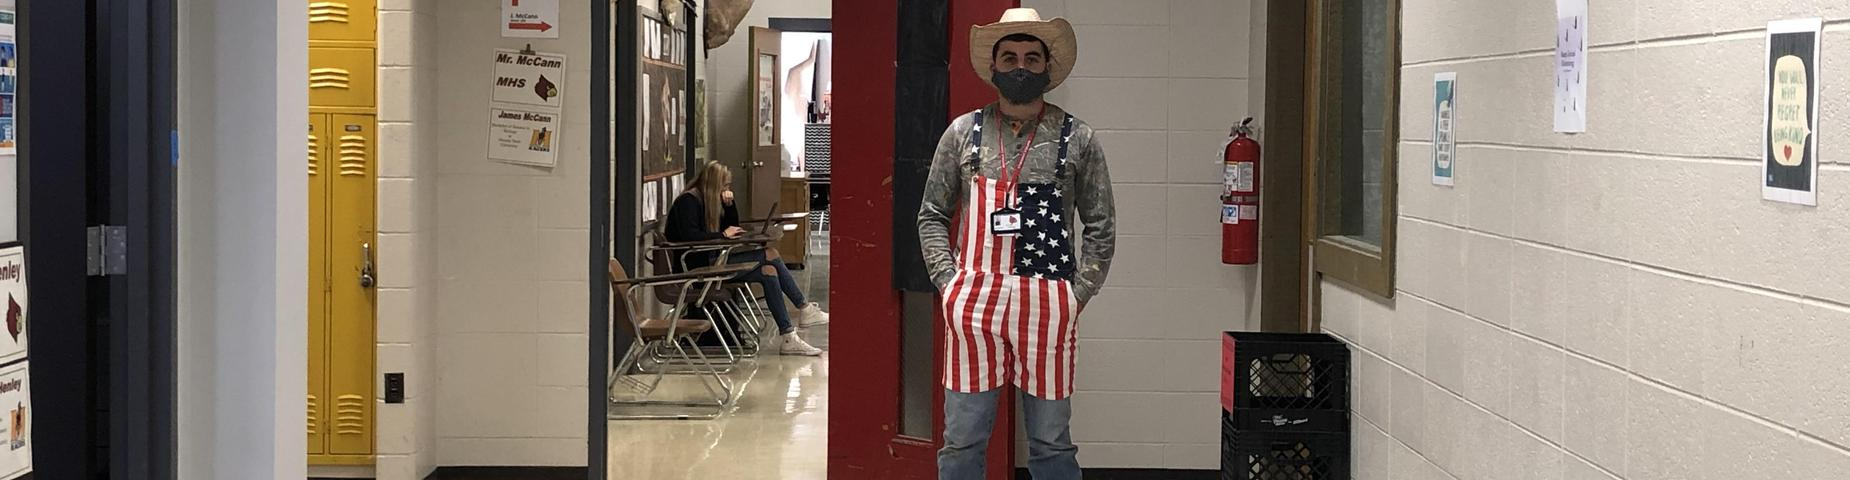 Battle of the Birds!  Hick Day-Mr. McCann going all out today!